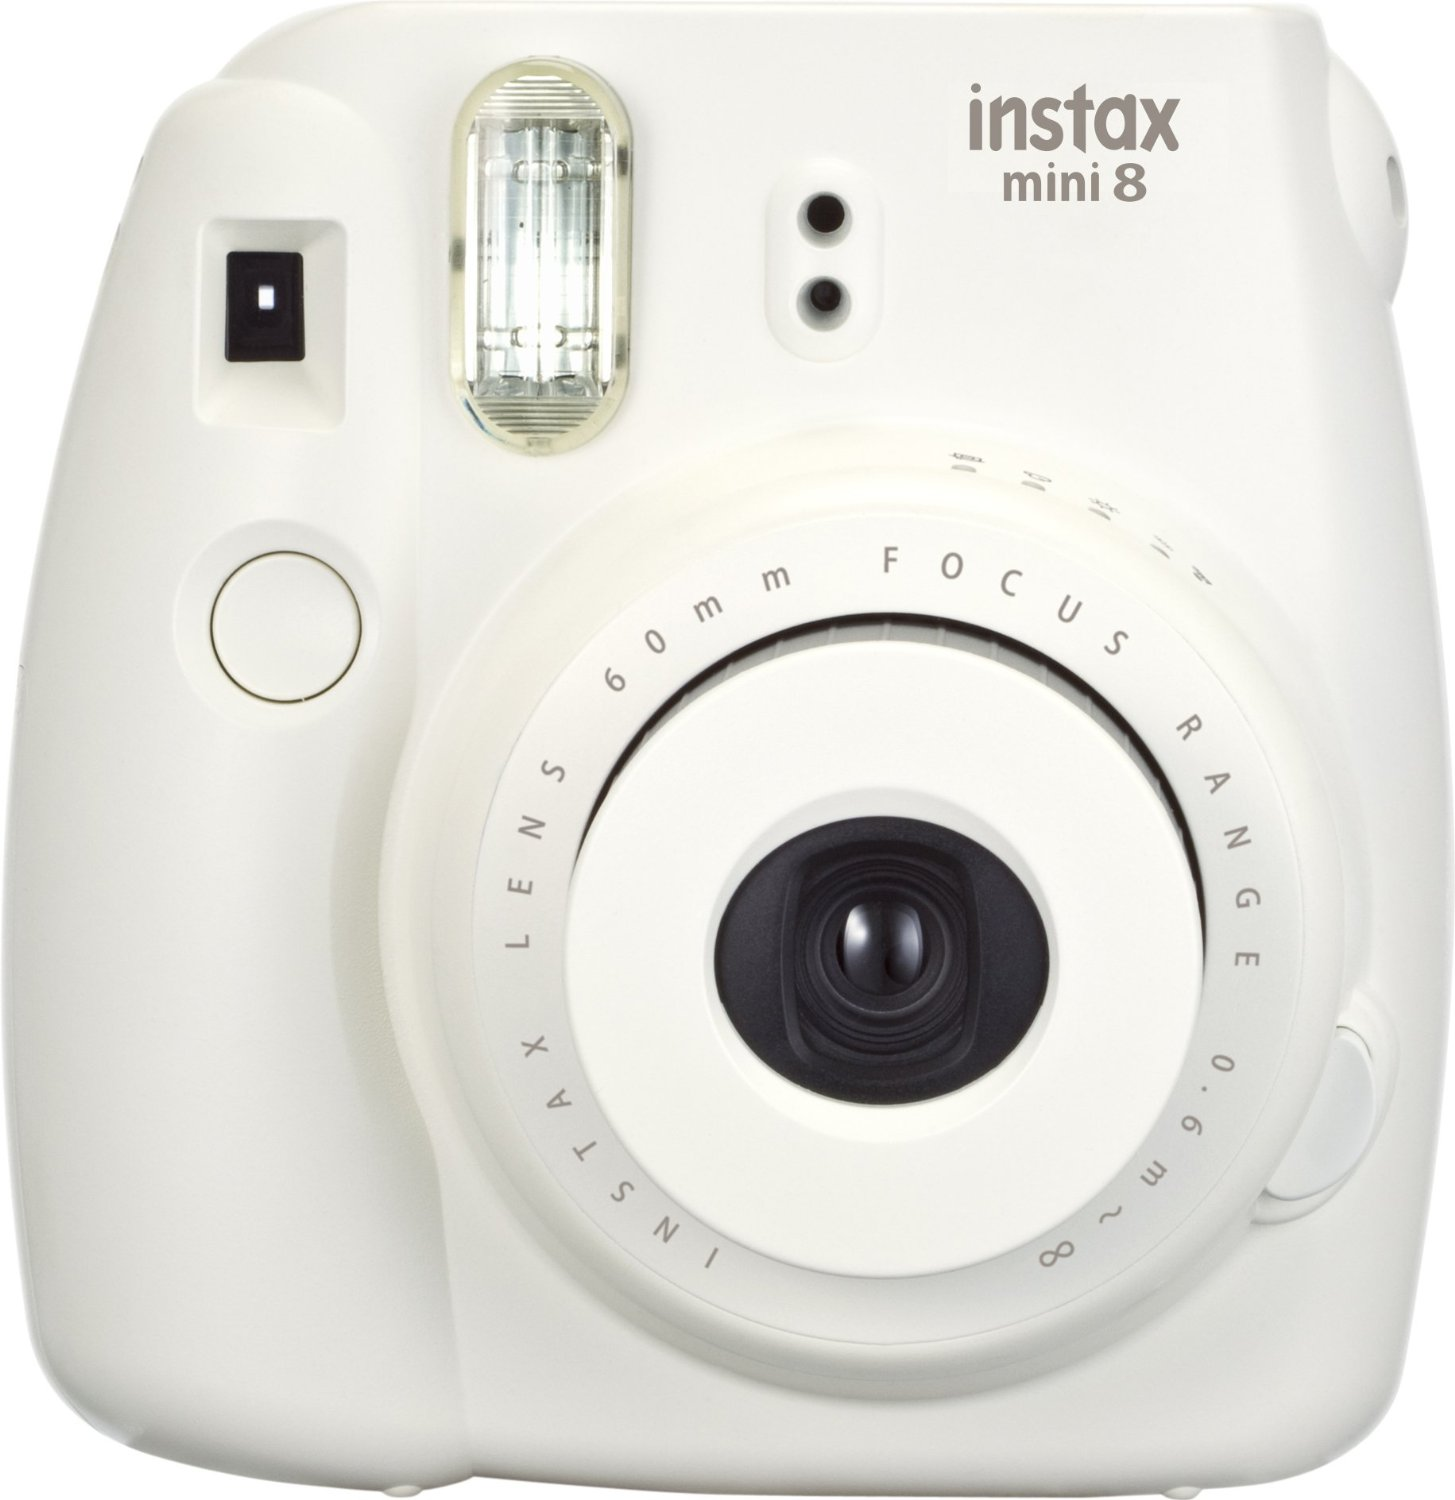 Amazon.com : Fujifilm Instax Mini 8 Instant Film Camera (White) : Polaroid Camera : Camera u0026amp; Photo